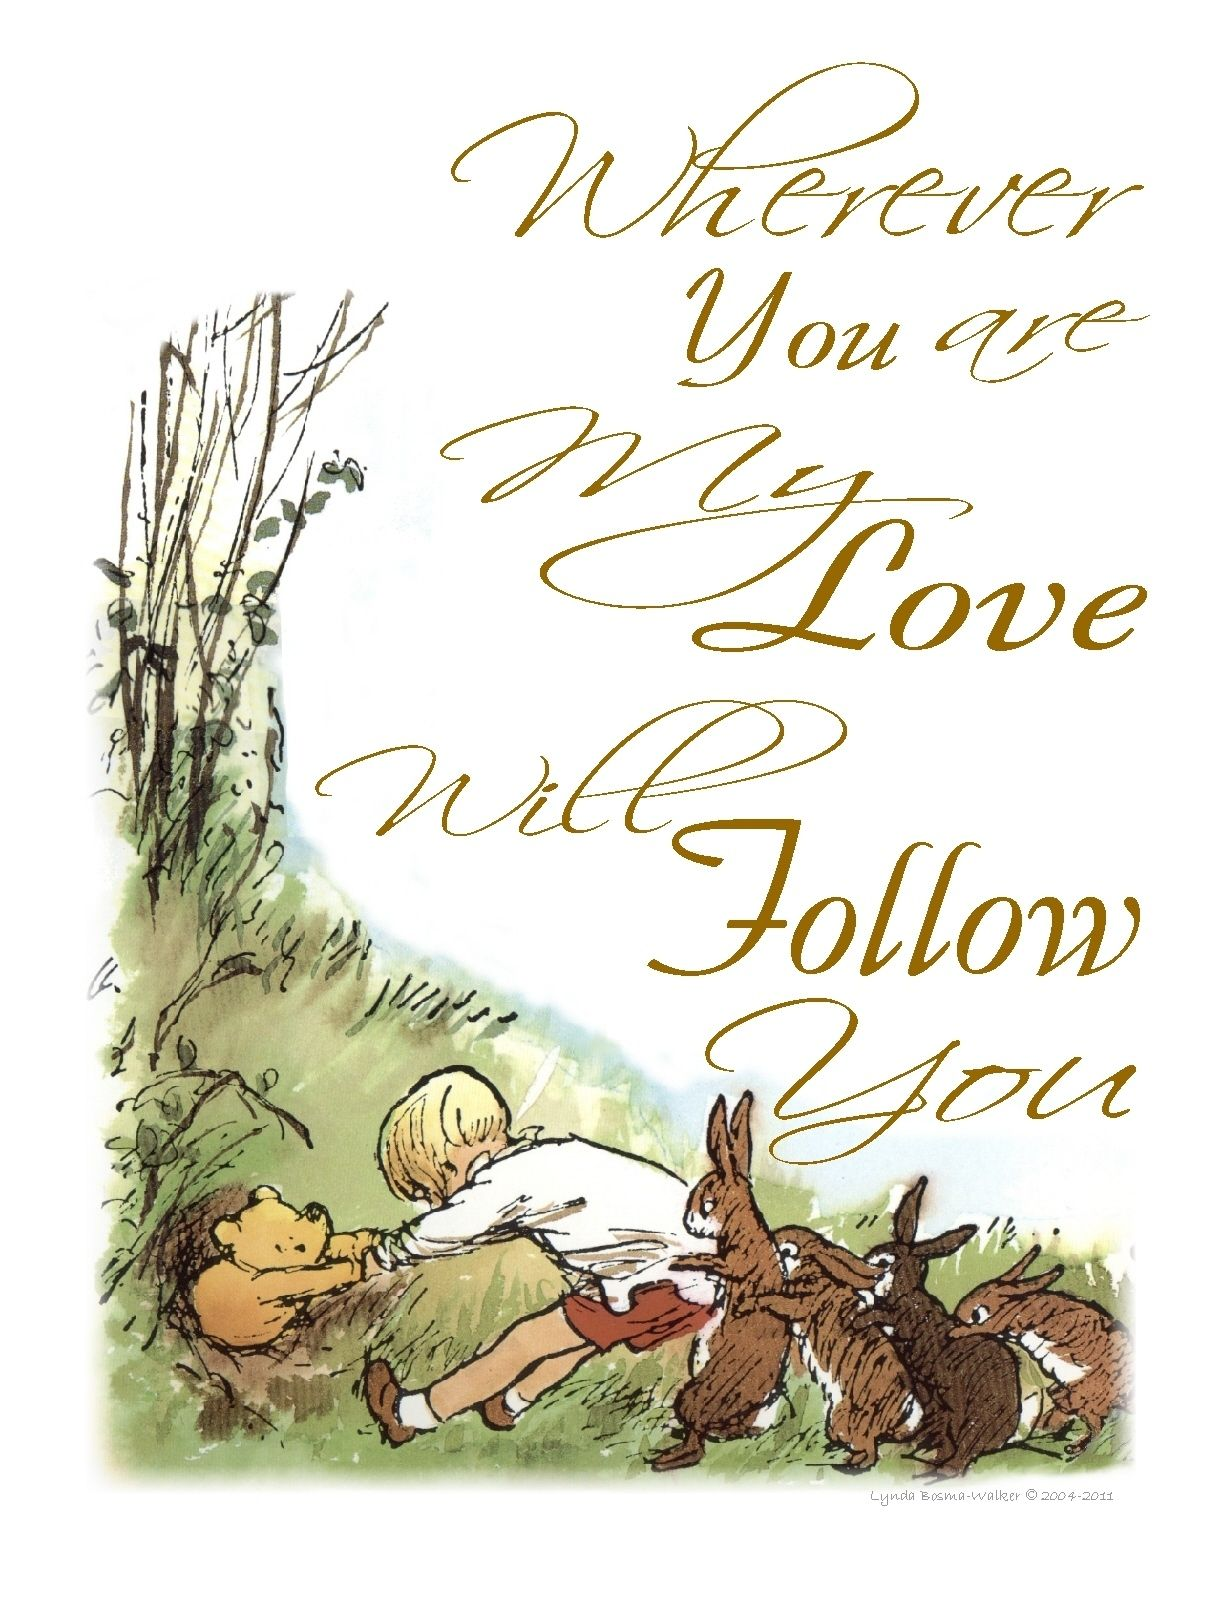 Pooh Love Quotes Classic Winnie The Pooh Nursery Wall Art Printmy Love Will Follow